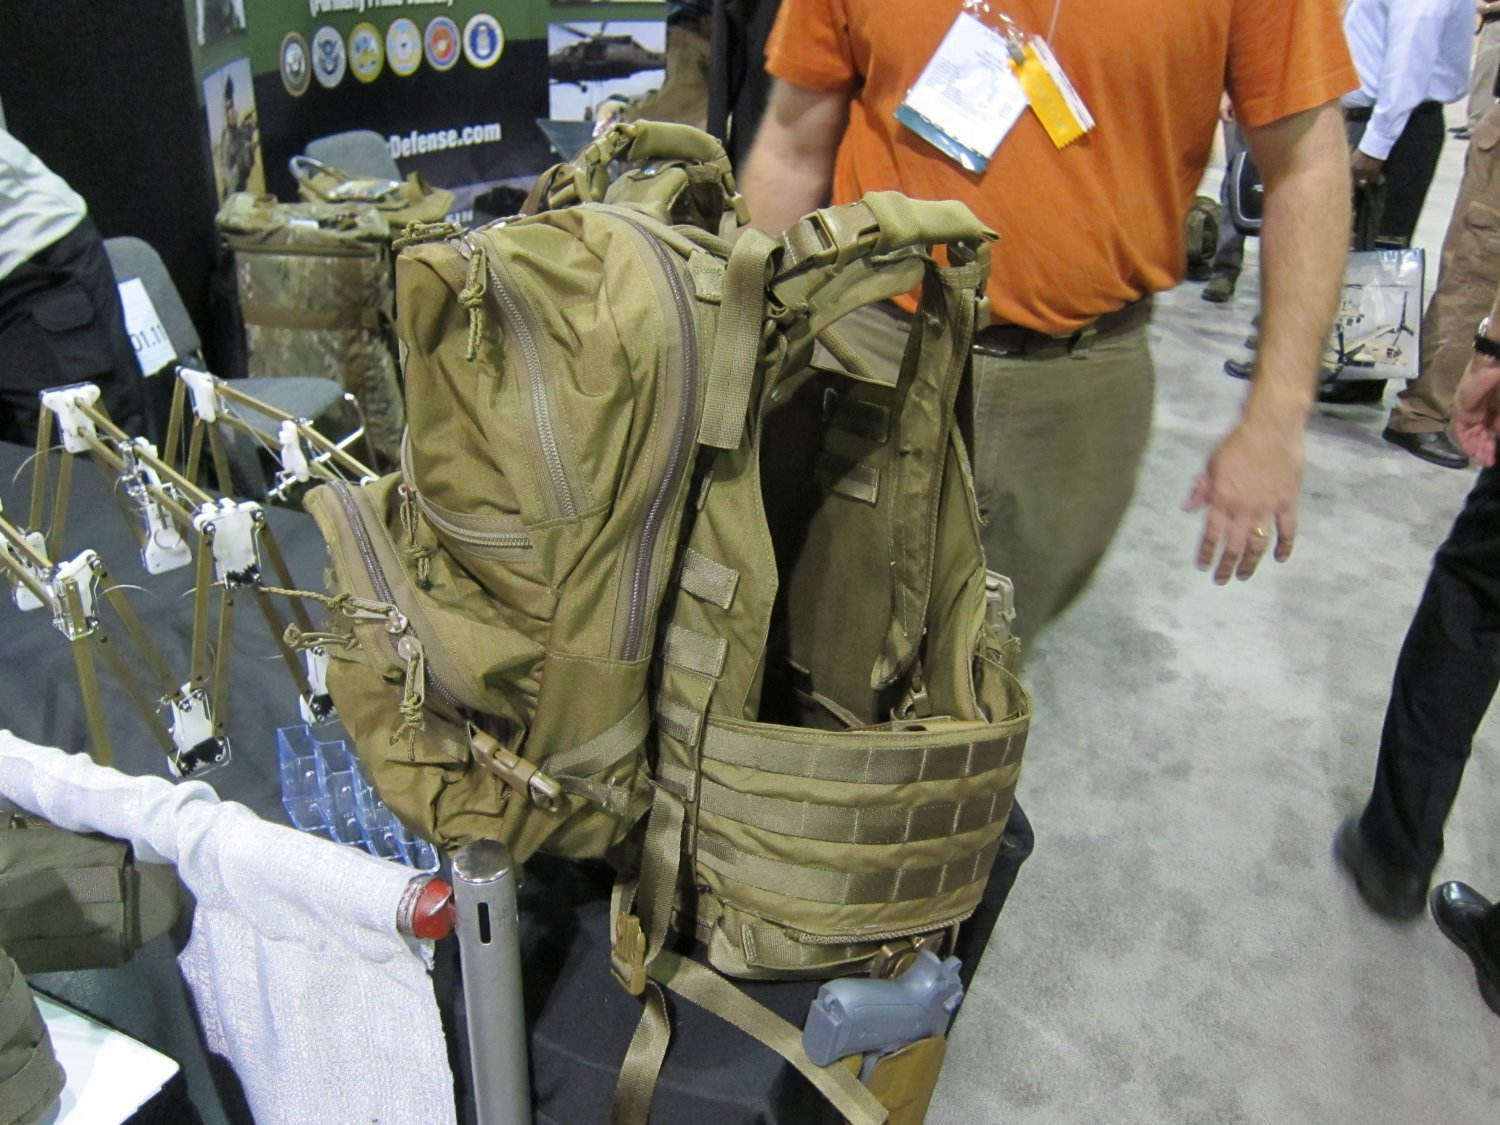 Archangel Armor Internal Frame Load Bearing System IFLBS Version 5 Tactical Armor Plate Carrier System SOFIC 2011 1 <!  :en  >Archangel Armor Internal Frame Load Bearing System (IFLBS) Version 5 Tactical Armor Plate Carrier/Tactical Vest System: Lighten your load when youre in combat mode!<!  :  >